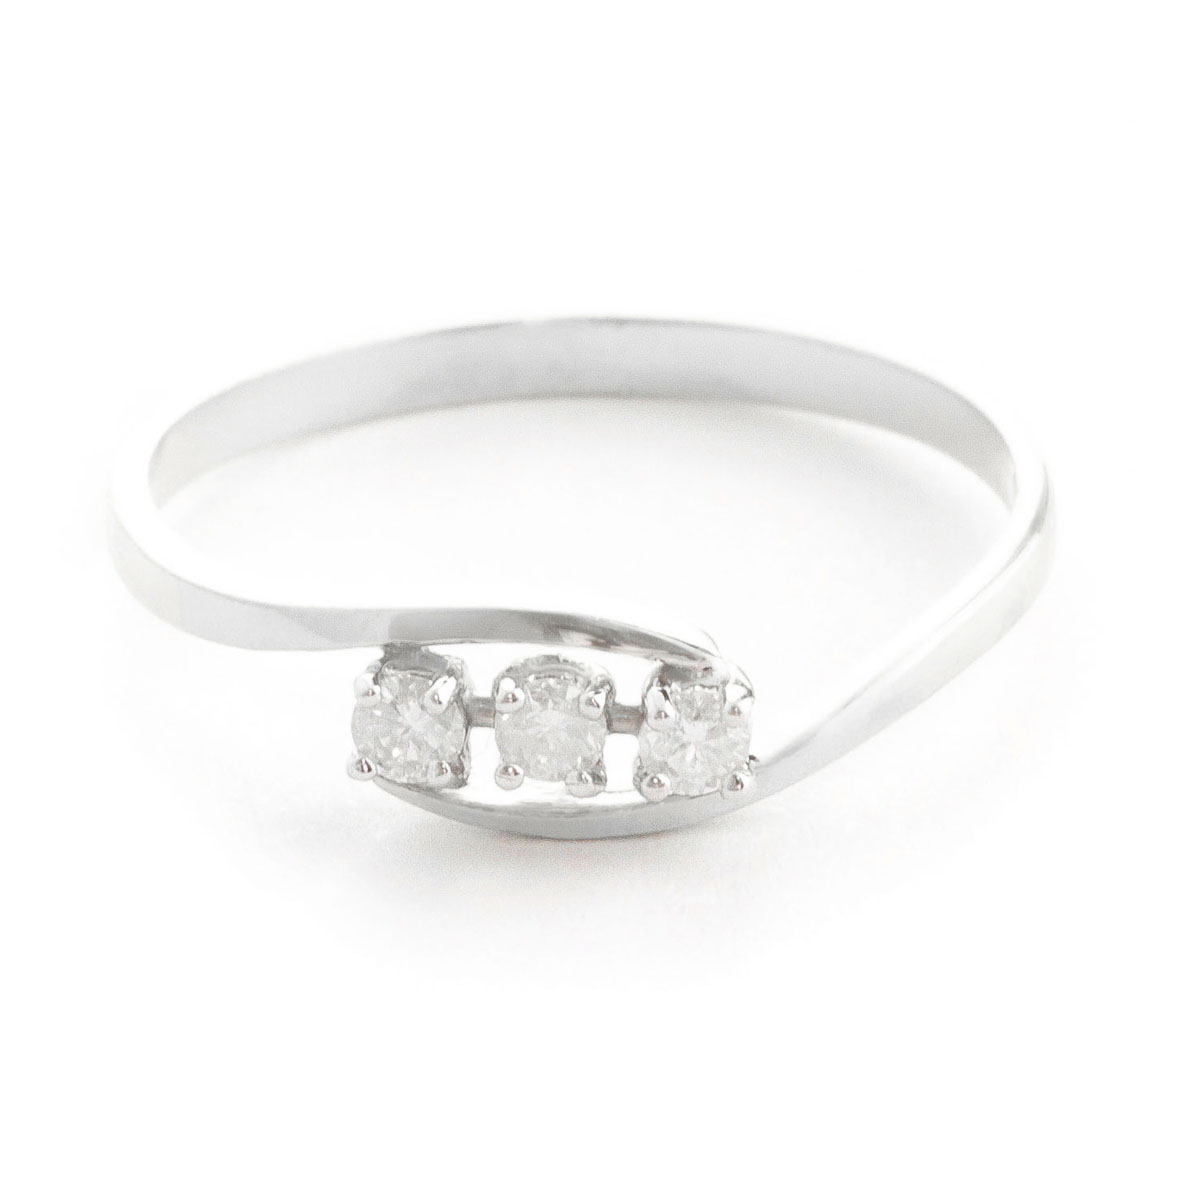 Round Cut Diamond Ring 0.15 ctw in Sterling Silver